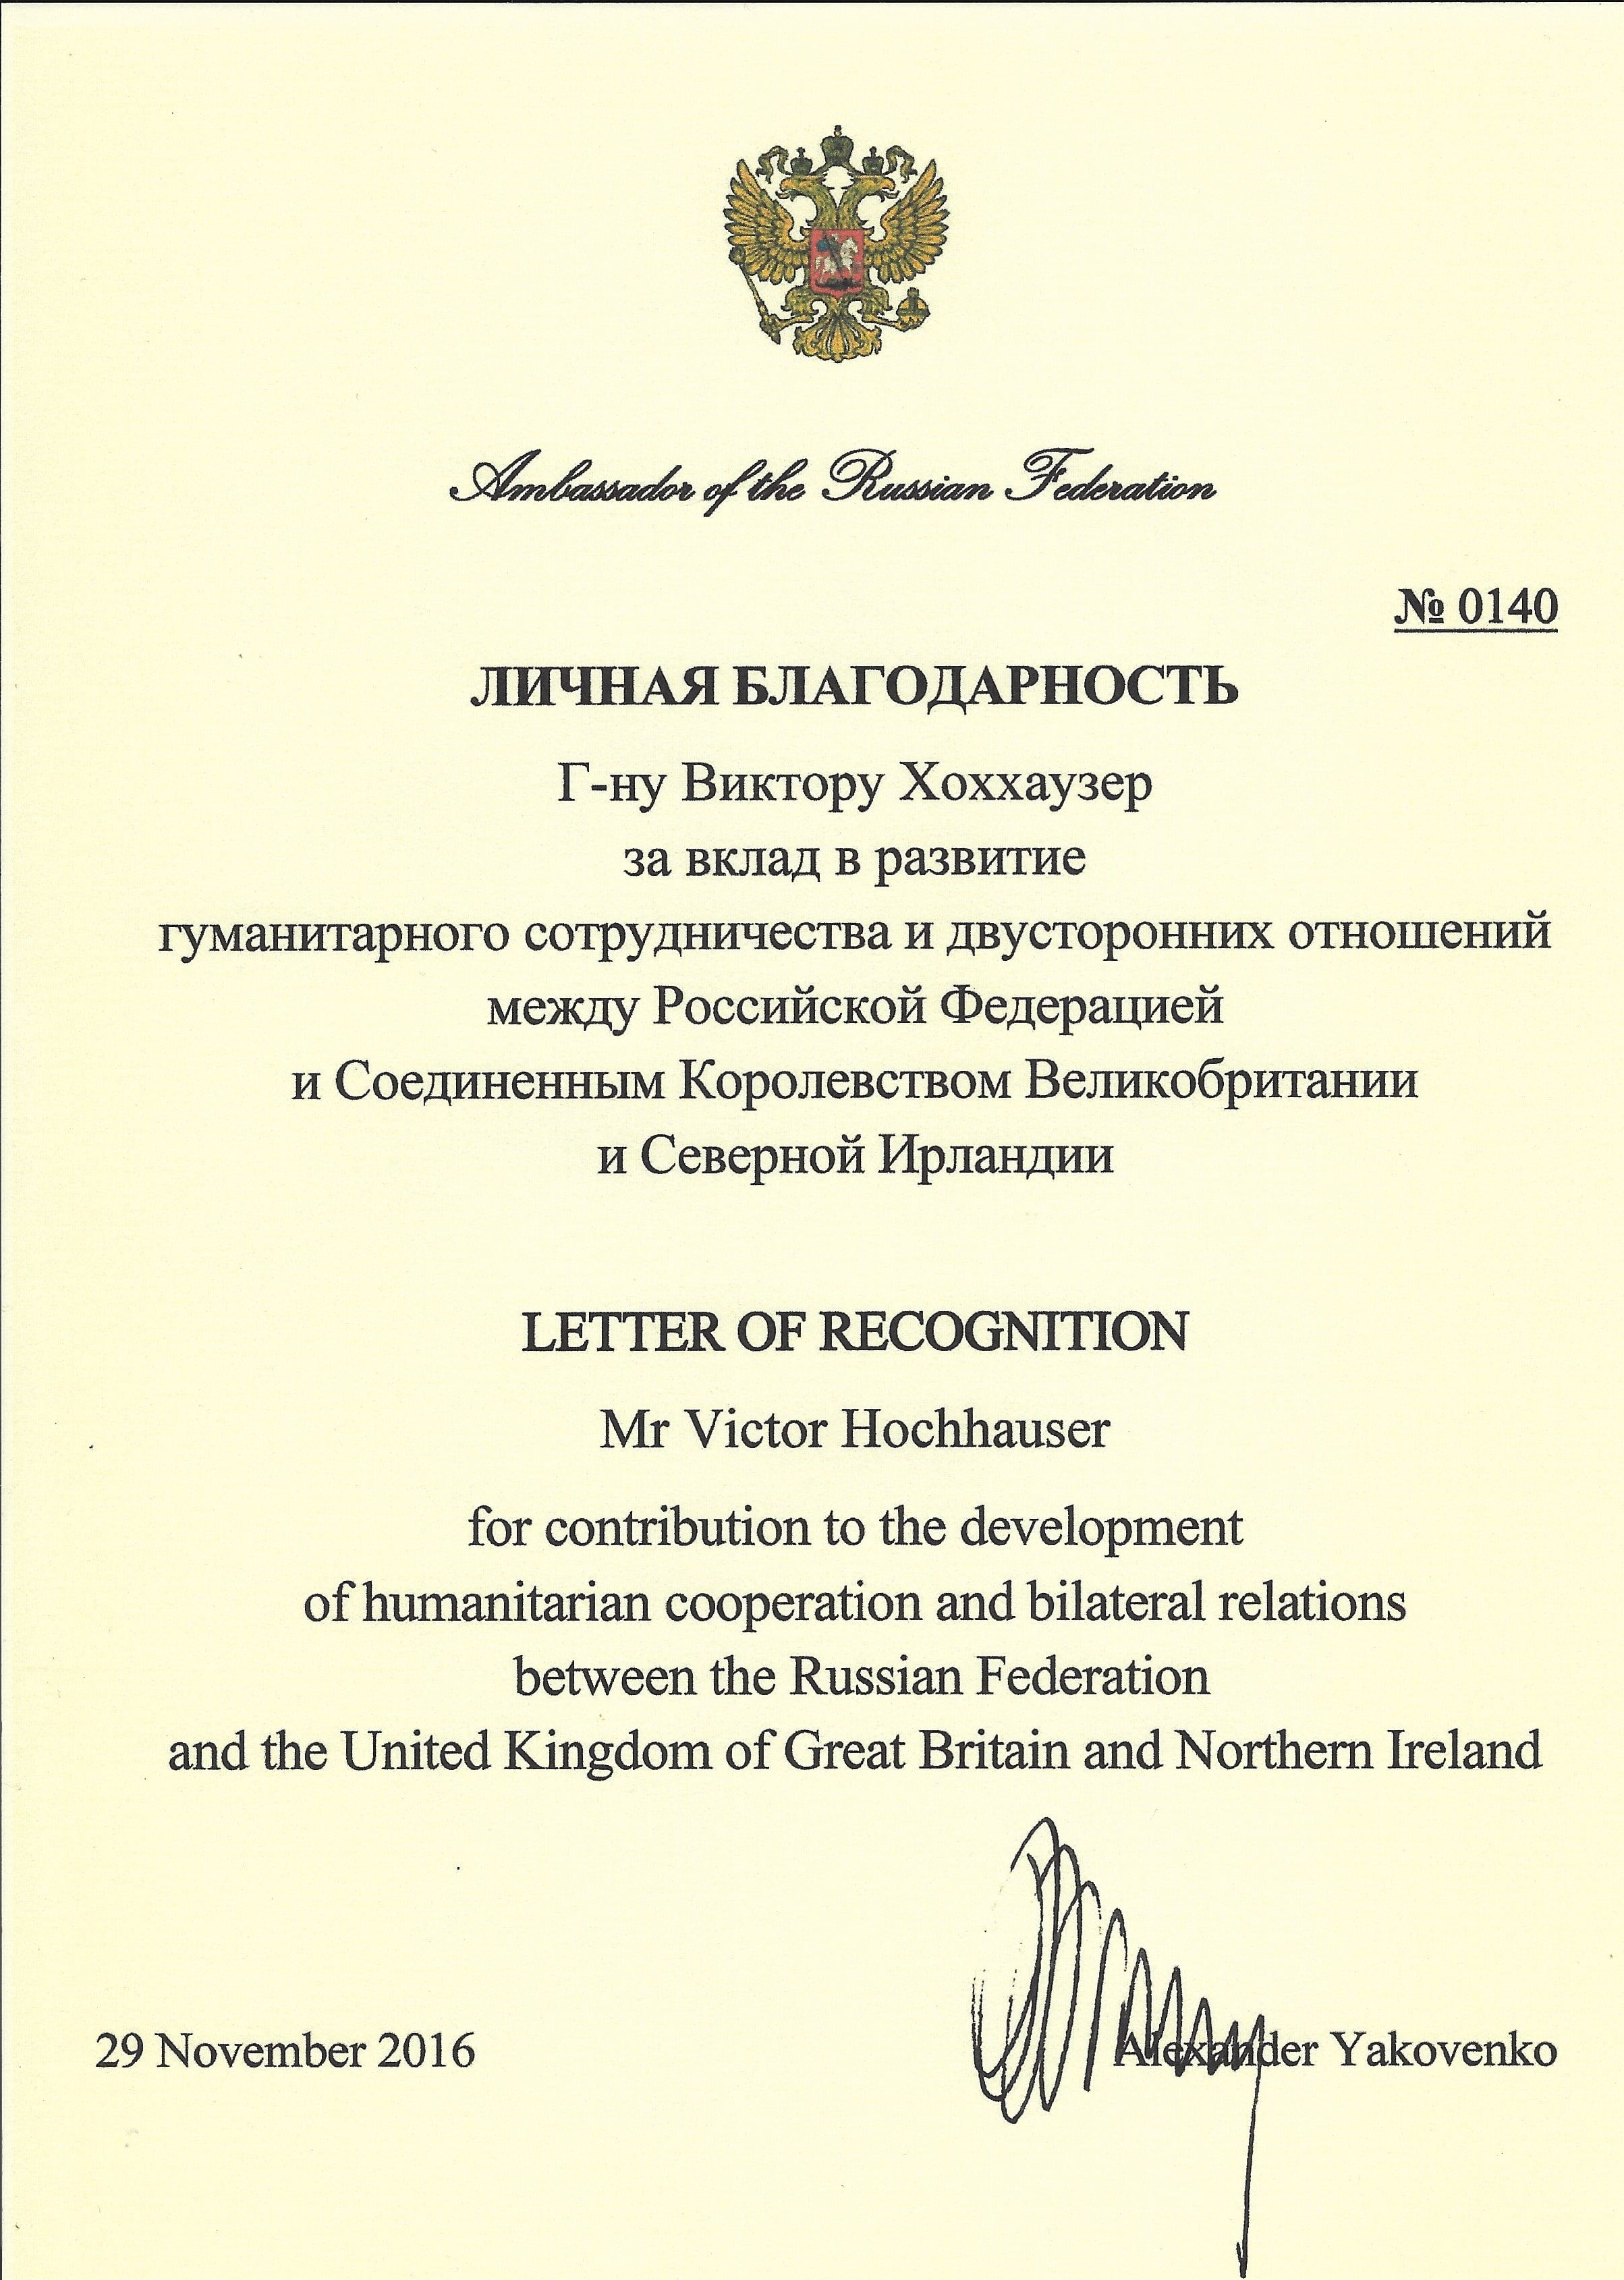 Russian Federation Letter of Recognition, Victor Hochhauser